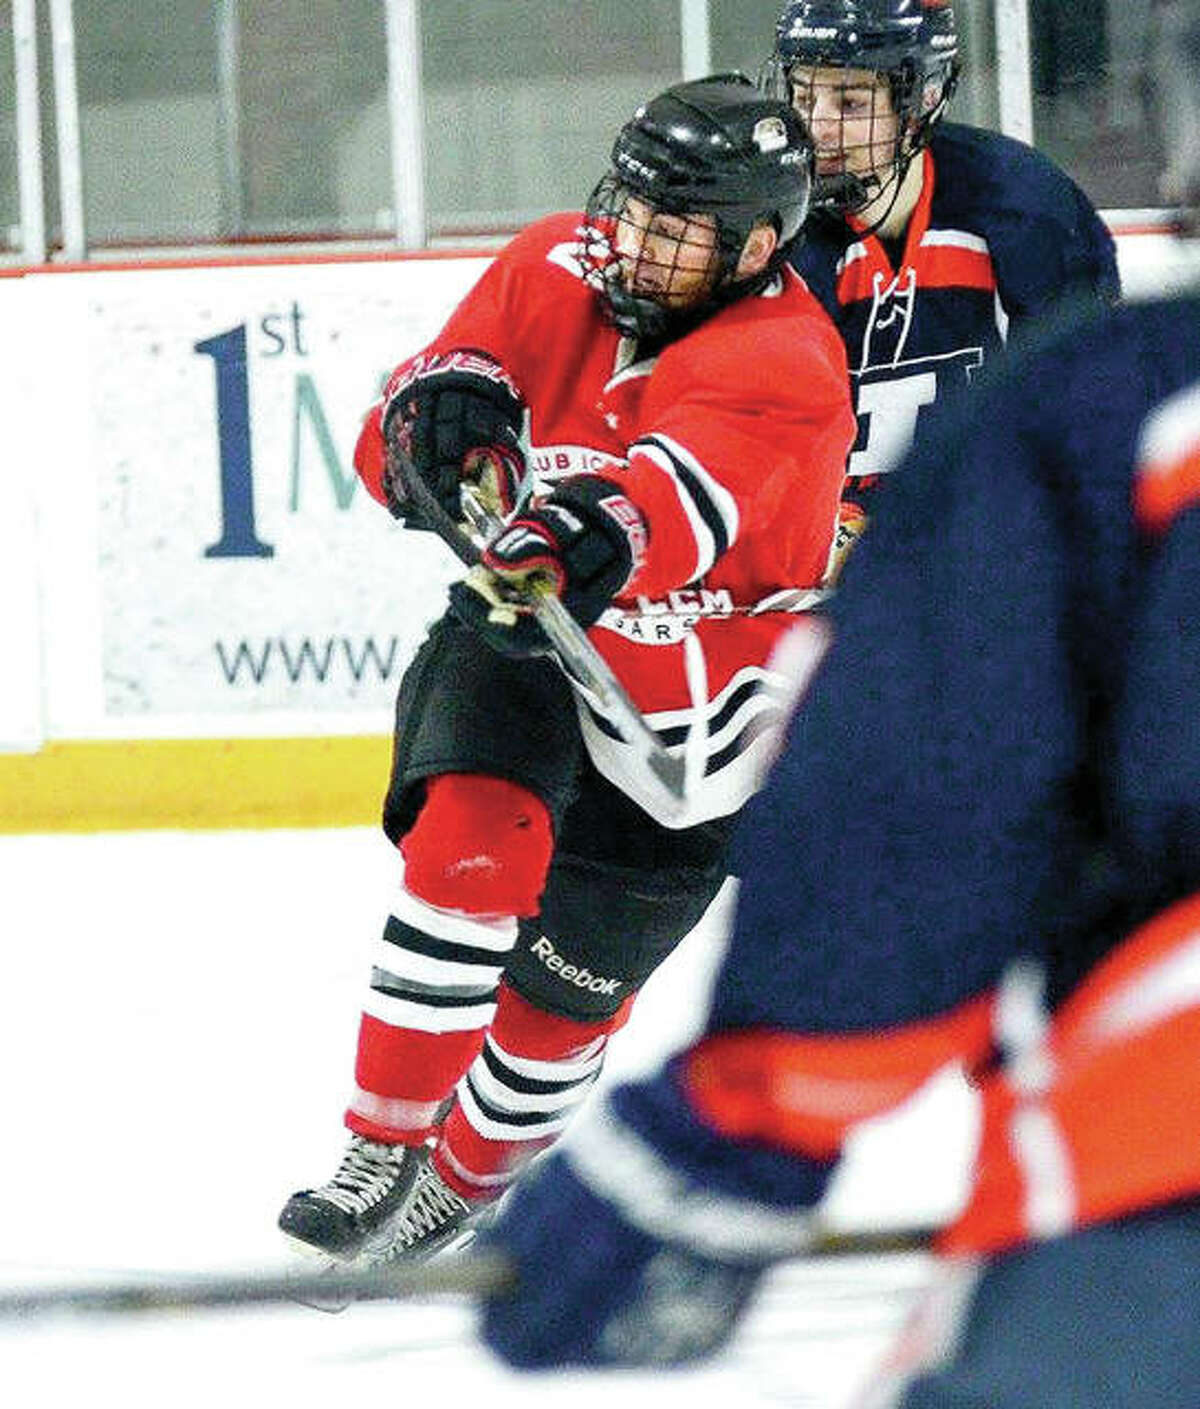 SIUE's Tyler Gilleland, left, scored three goals to lead his team to a 7-3 victory over Saint Louis University in the Veterans Day Game at the east Alton Ice Arena. Gilleland, a Southwestern high grad, is shown in actin earlier this season against the University of Illinois.